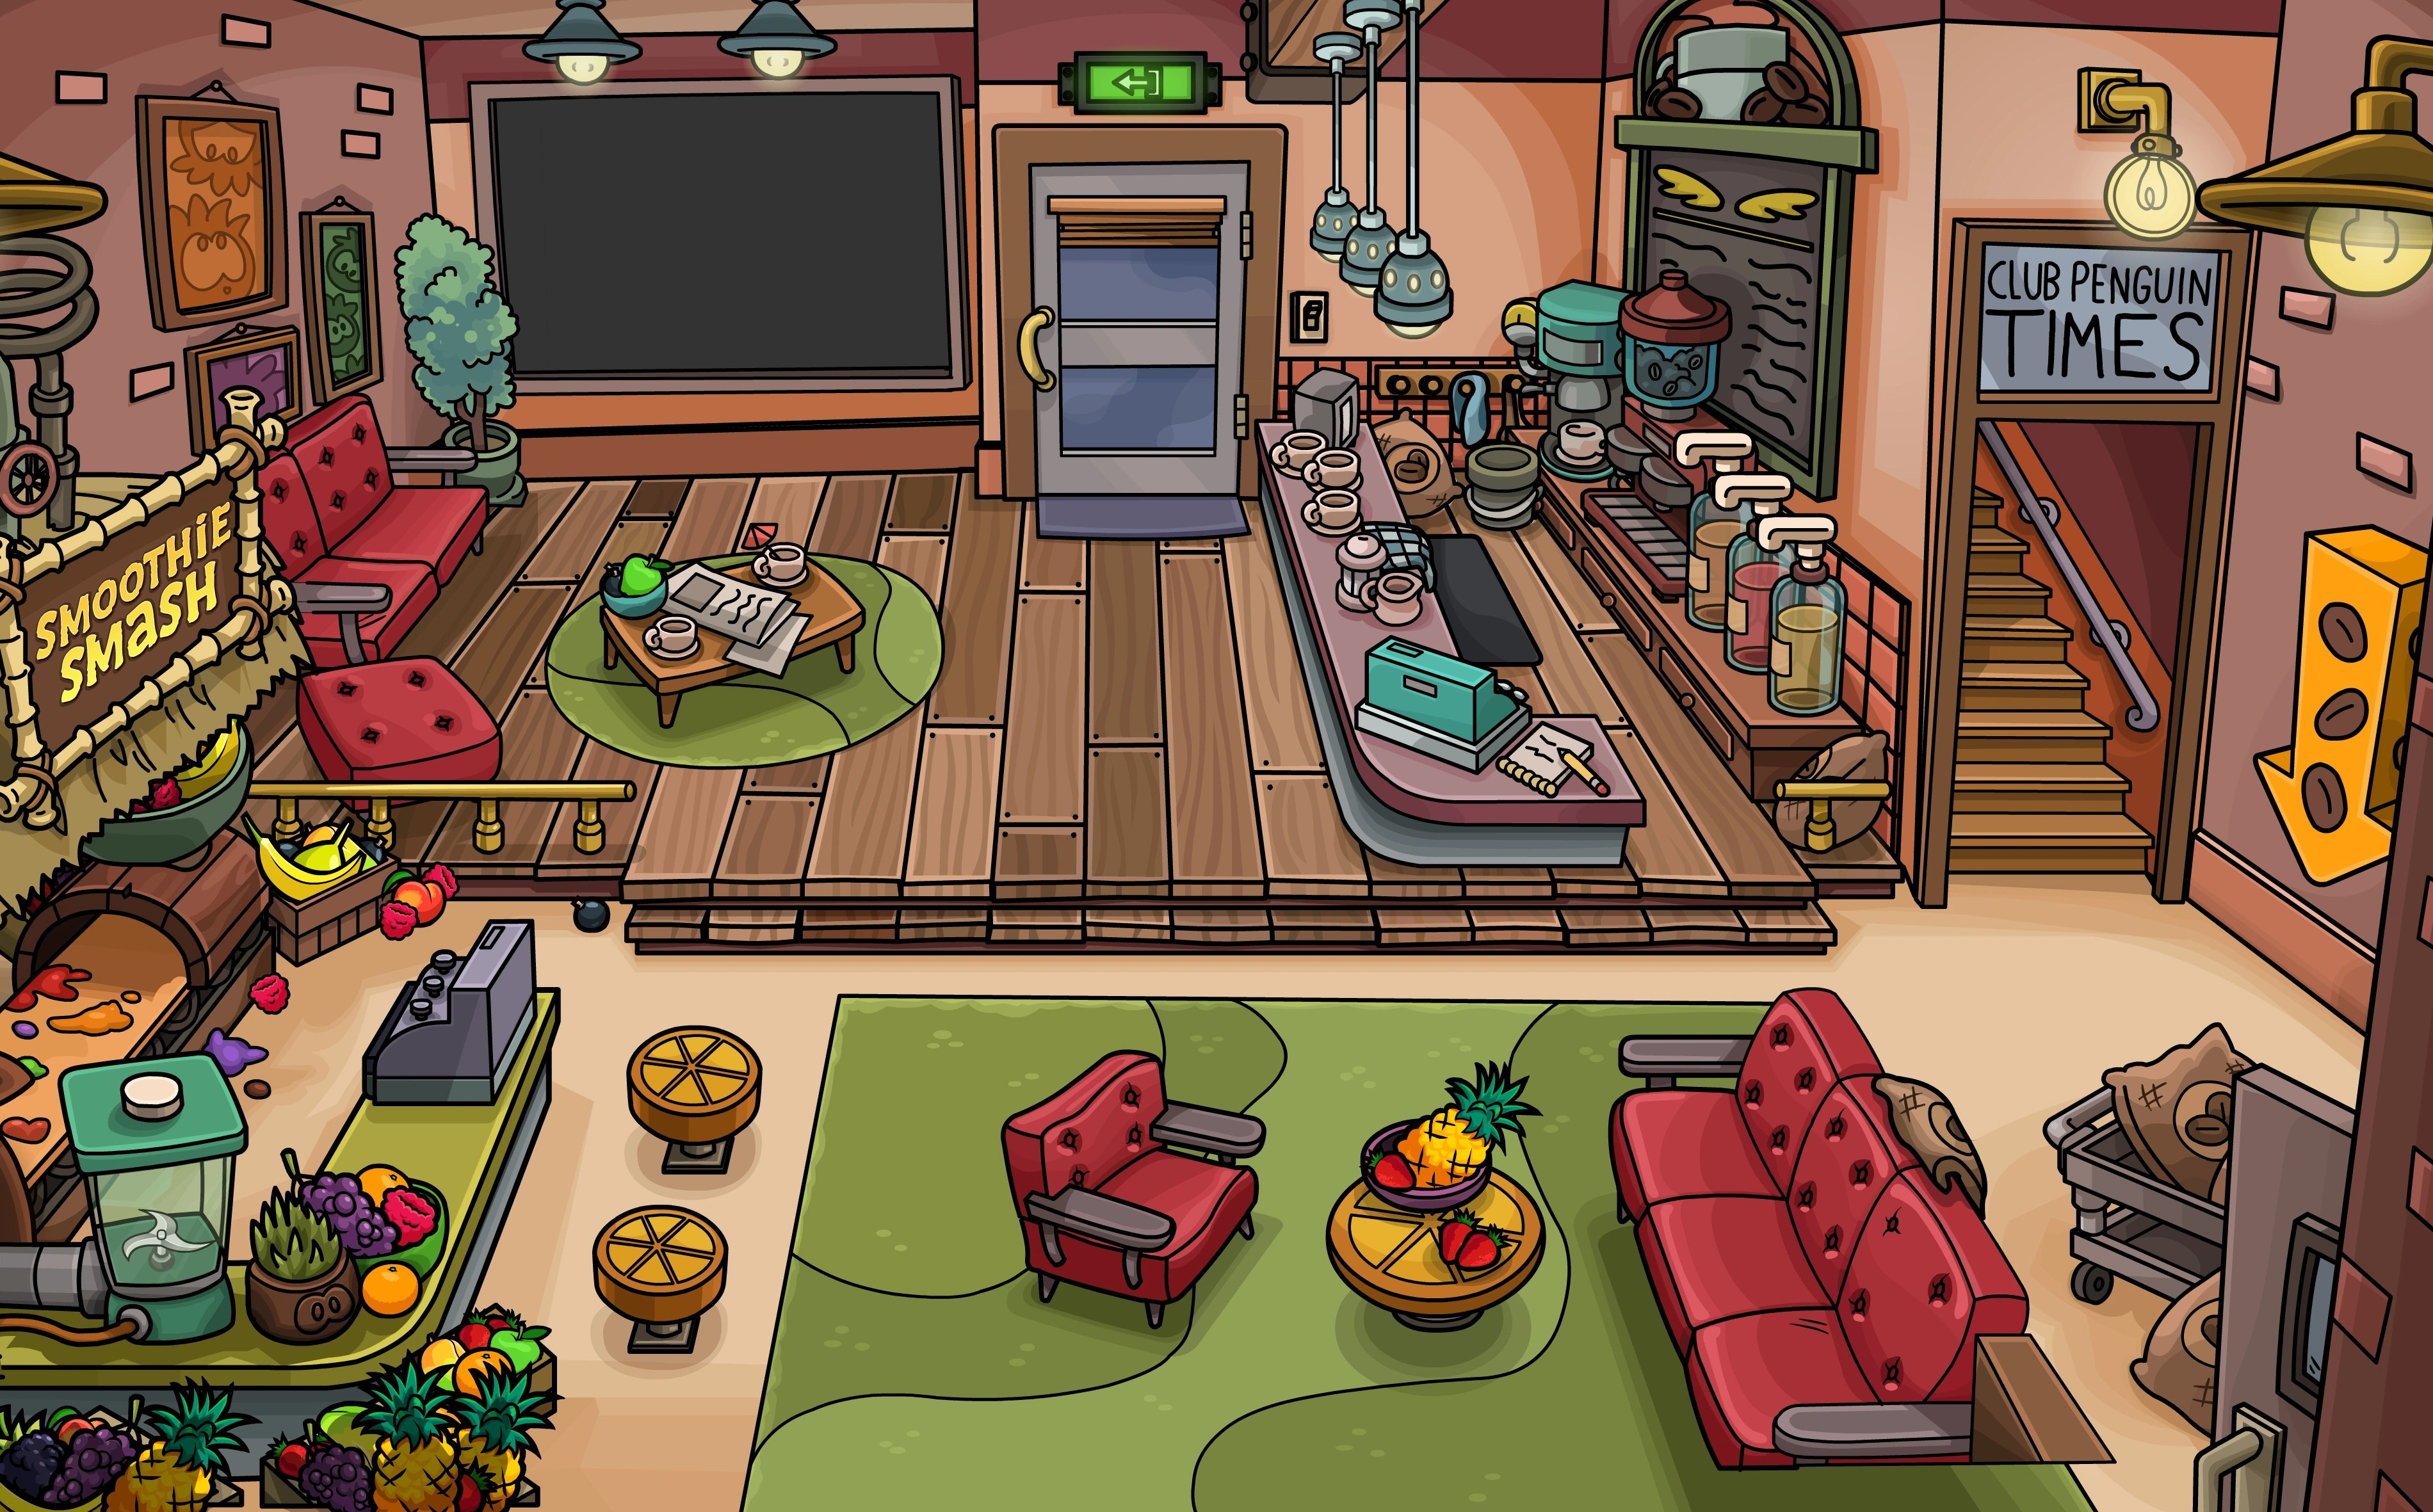 https://i0.wp.com/images.wikia.com/clubpenguin/images/6/6c/Halloween_Party_2012_Coffee_Shop.png